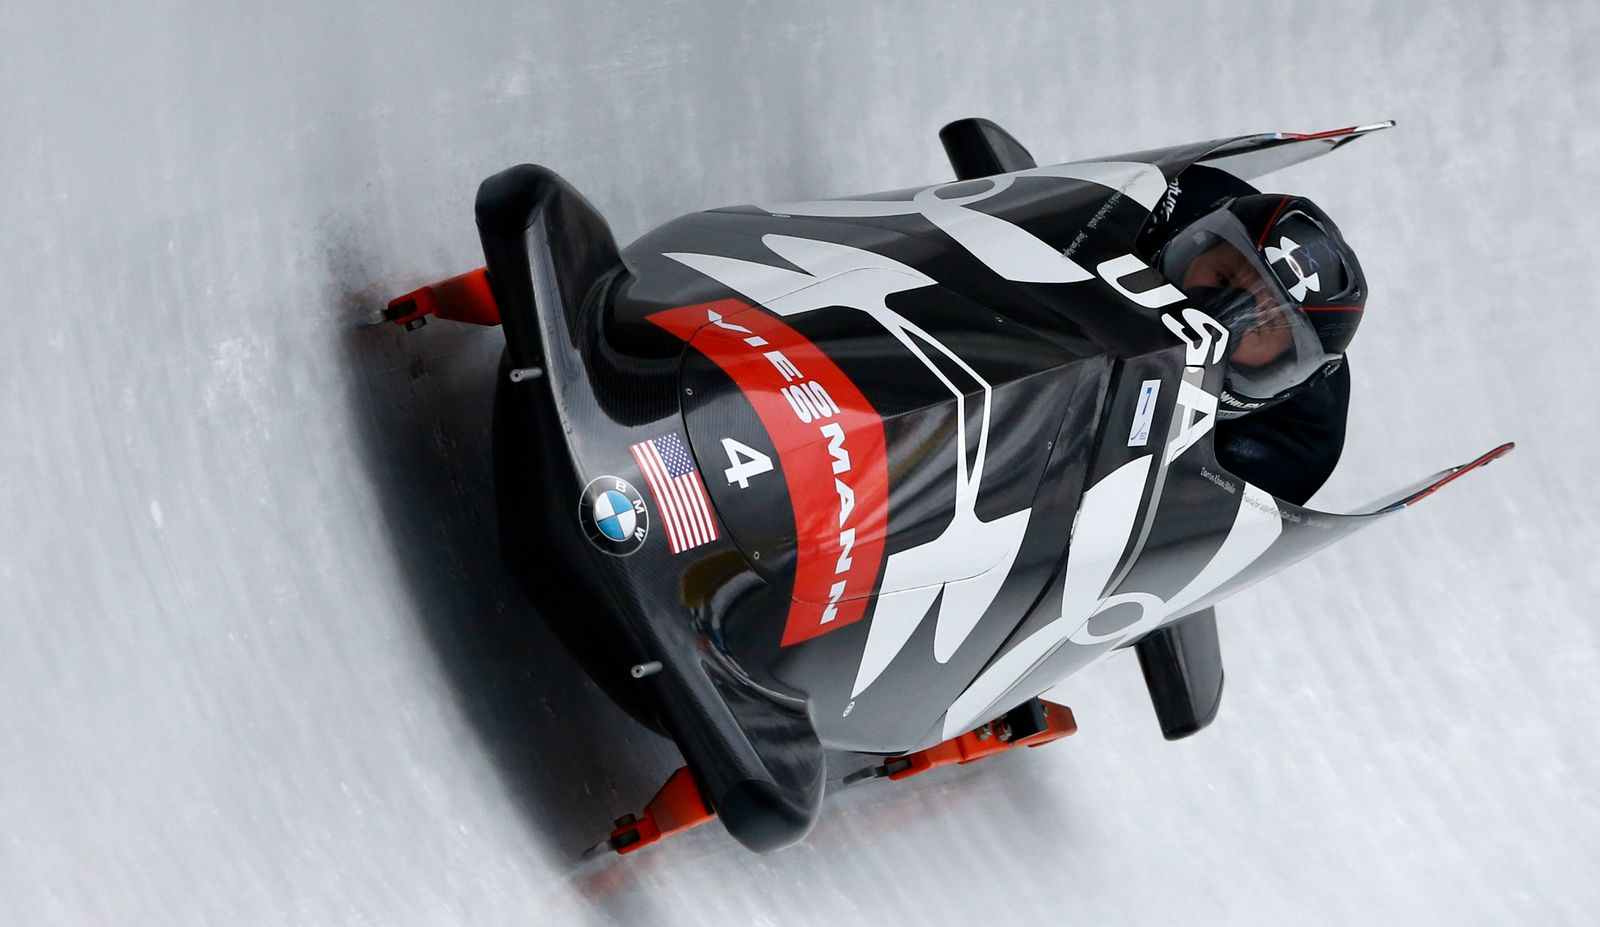 Germany Bobsled World Cup / Bob Steven Holcomb